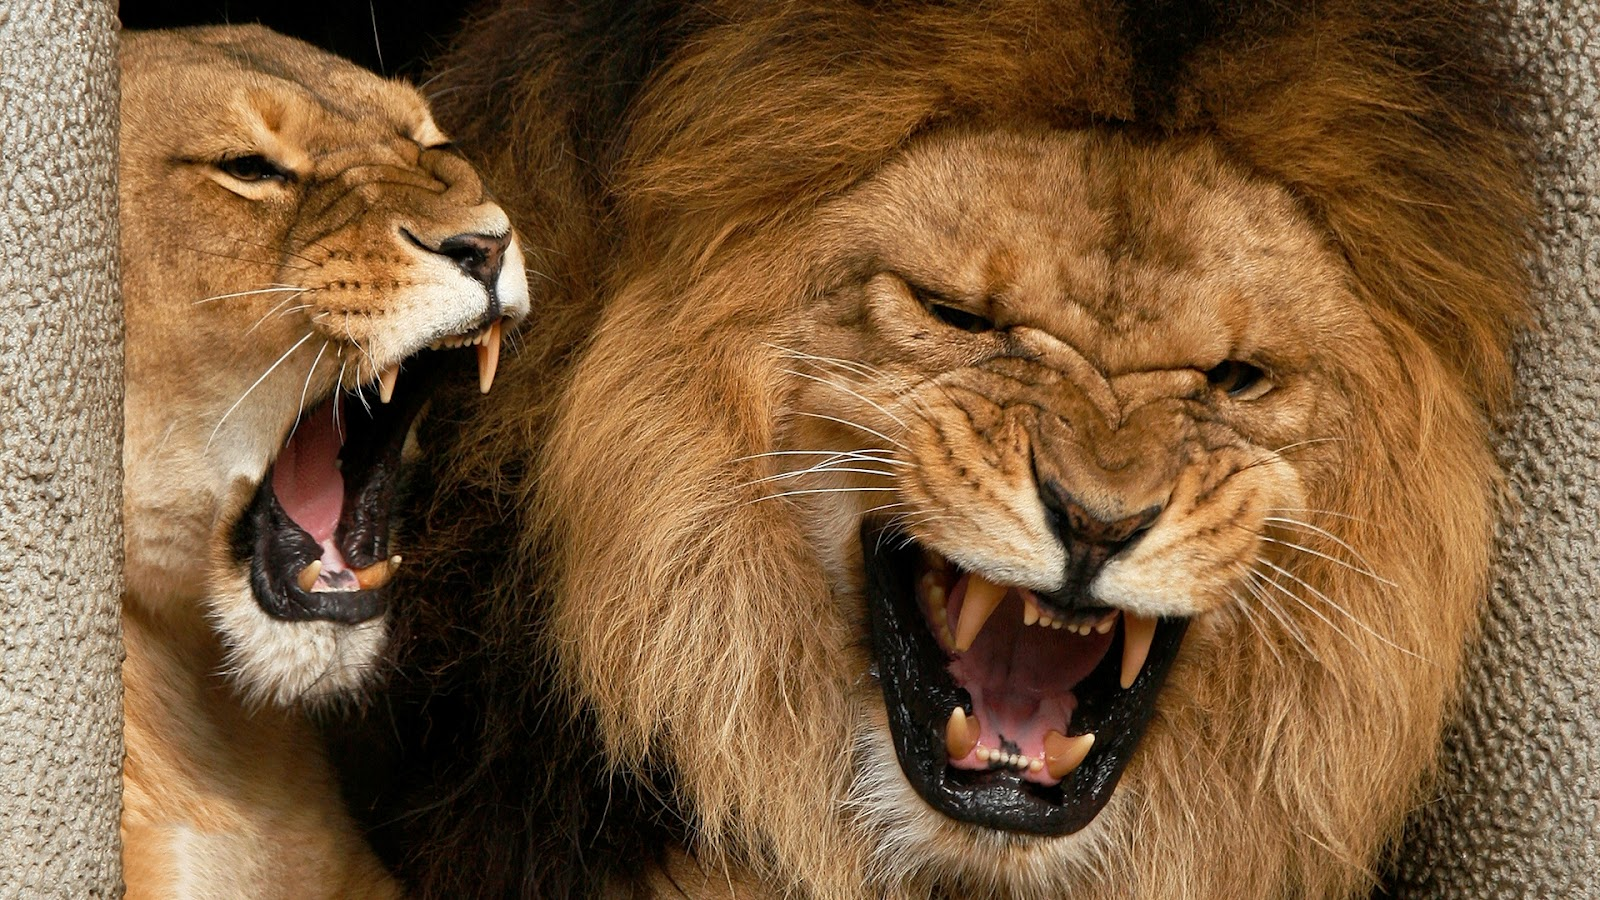 Angry Lions HD Wallpaper | Tontenk